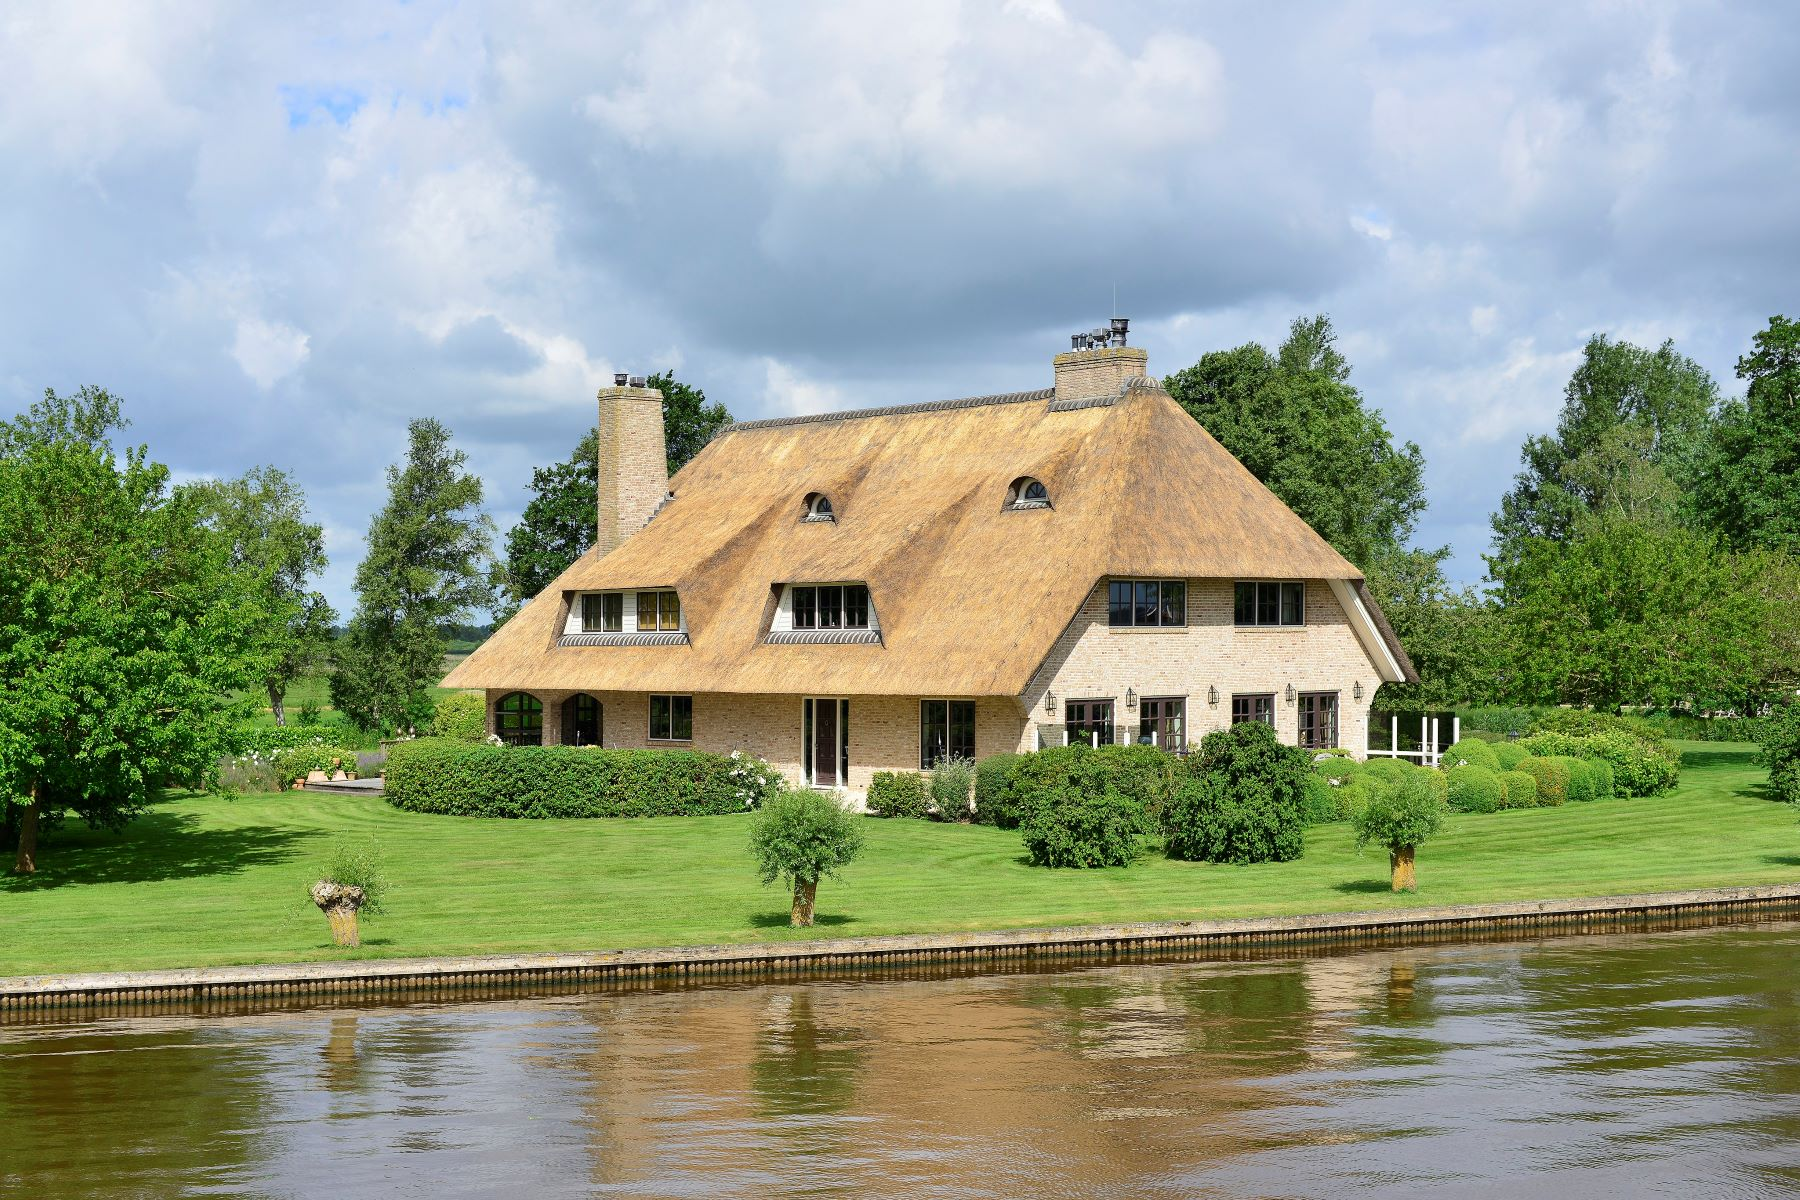 Single Family Home for Sale at Countryhouse with thatched roof Wetering West 45, Wetering, Overijssel, 8363 TM Netherlands